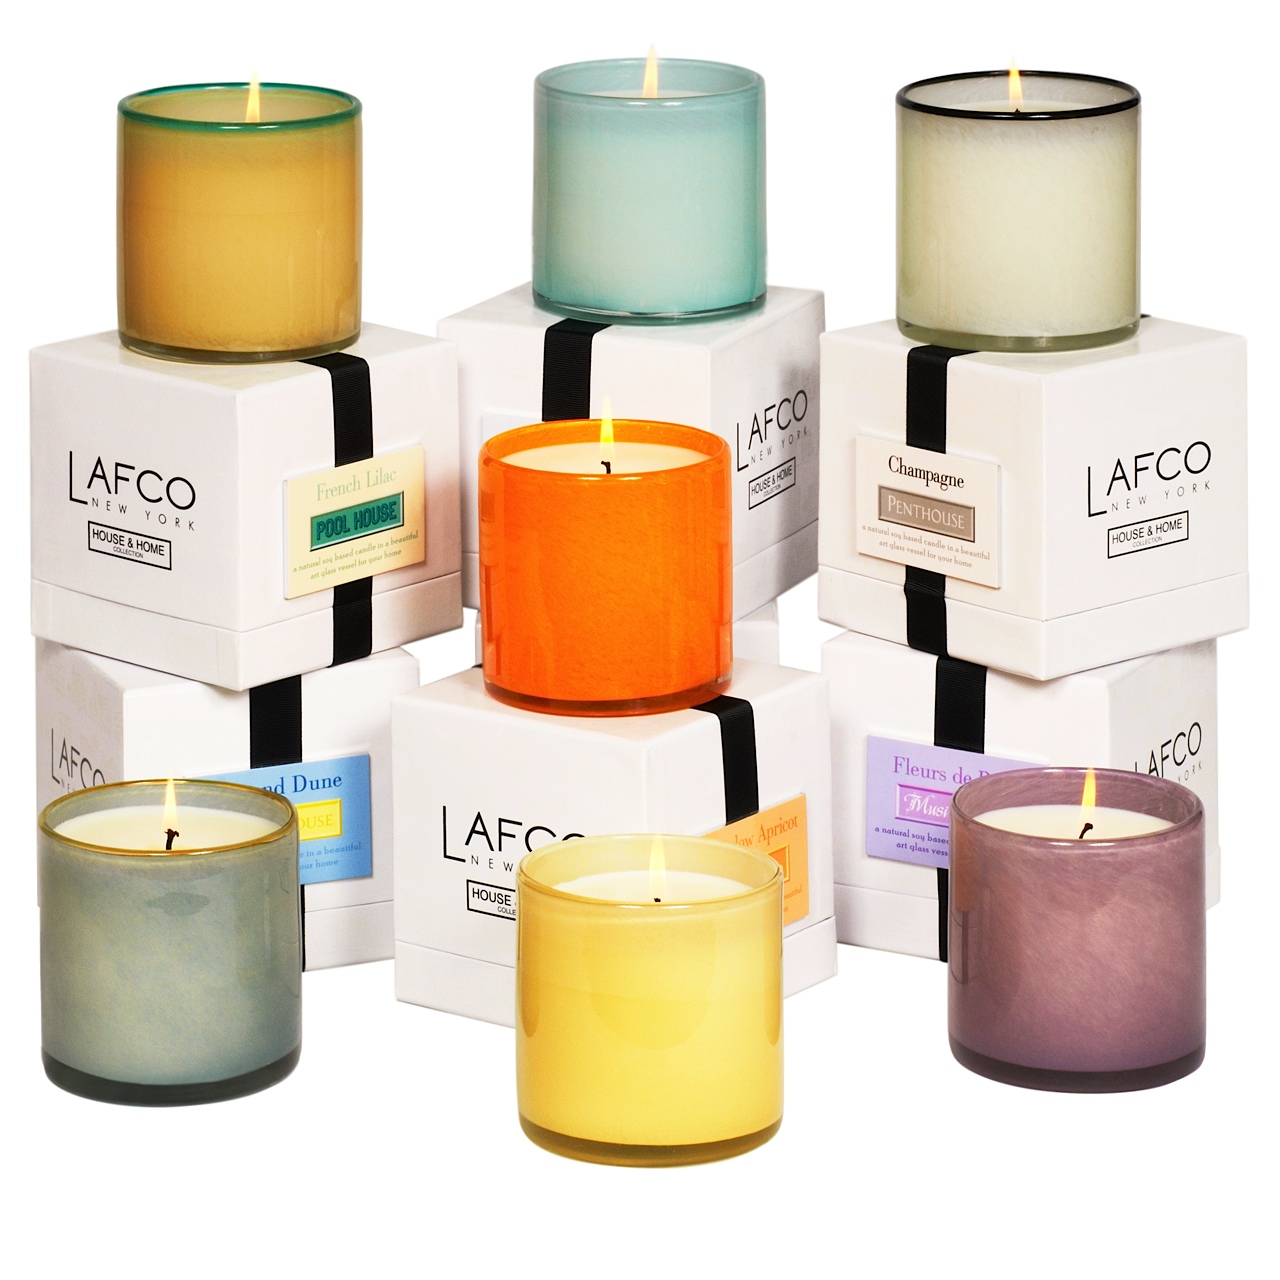 Lafco Master Bedroom Candle Bedroom Review Design